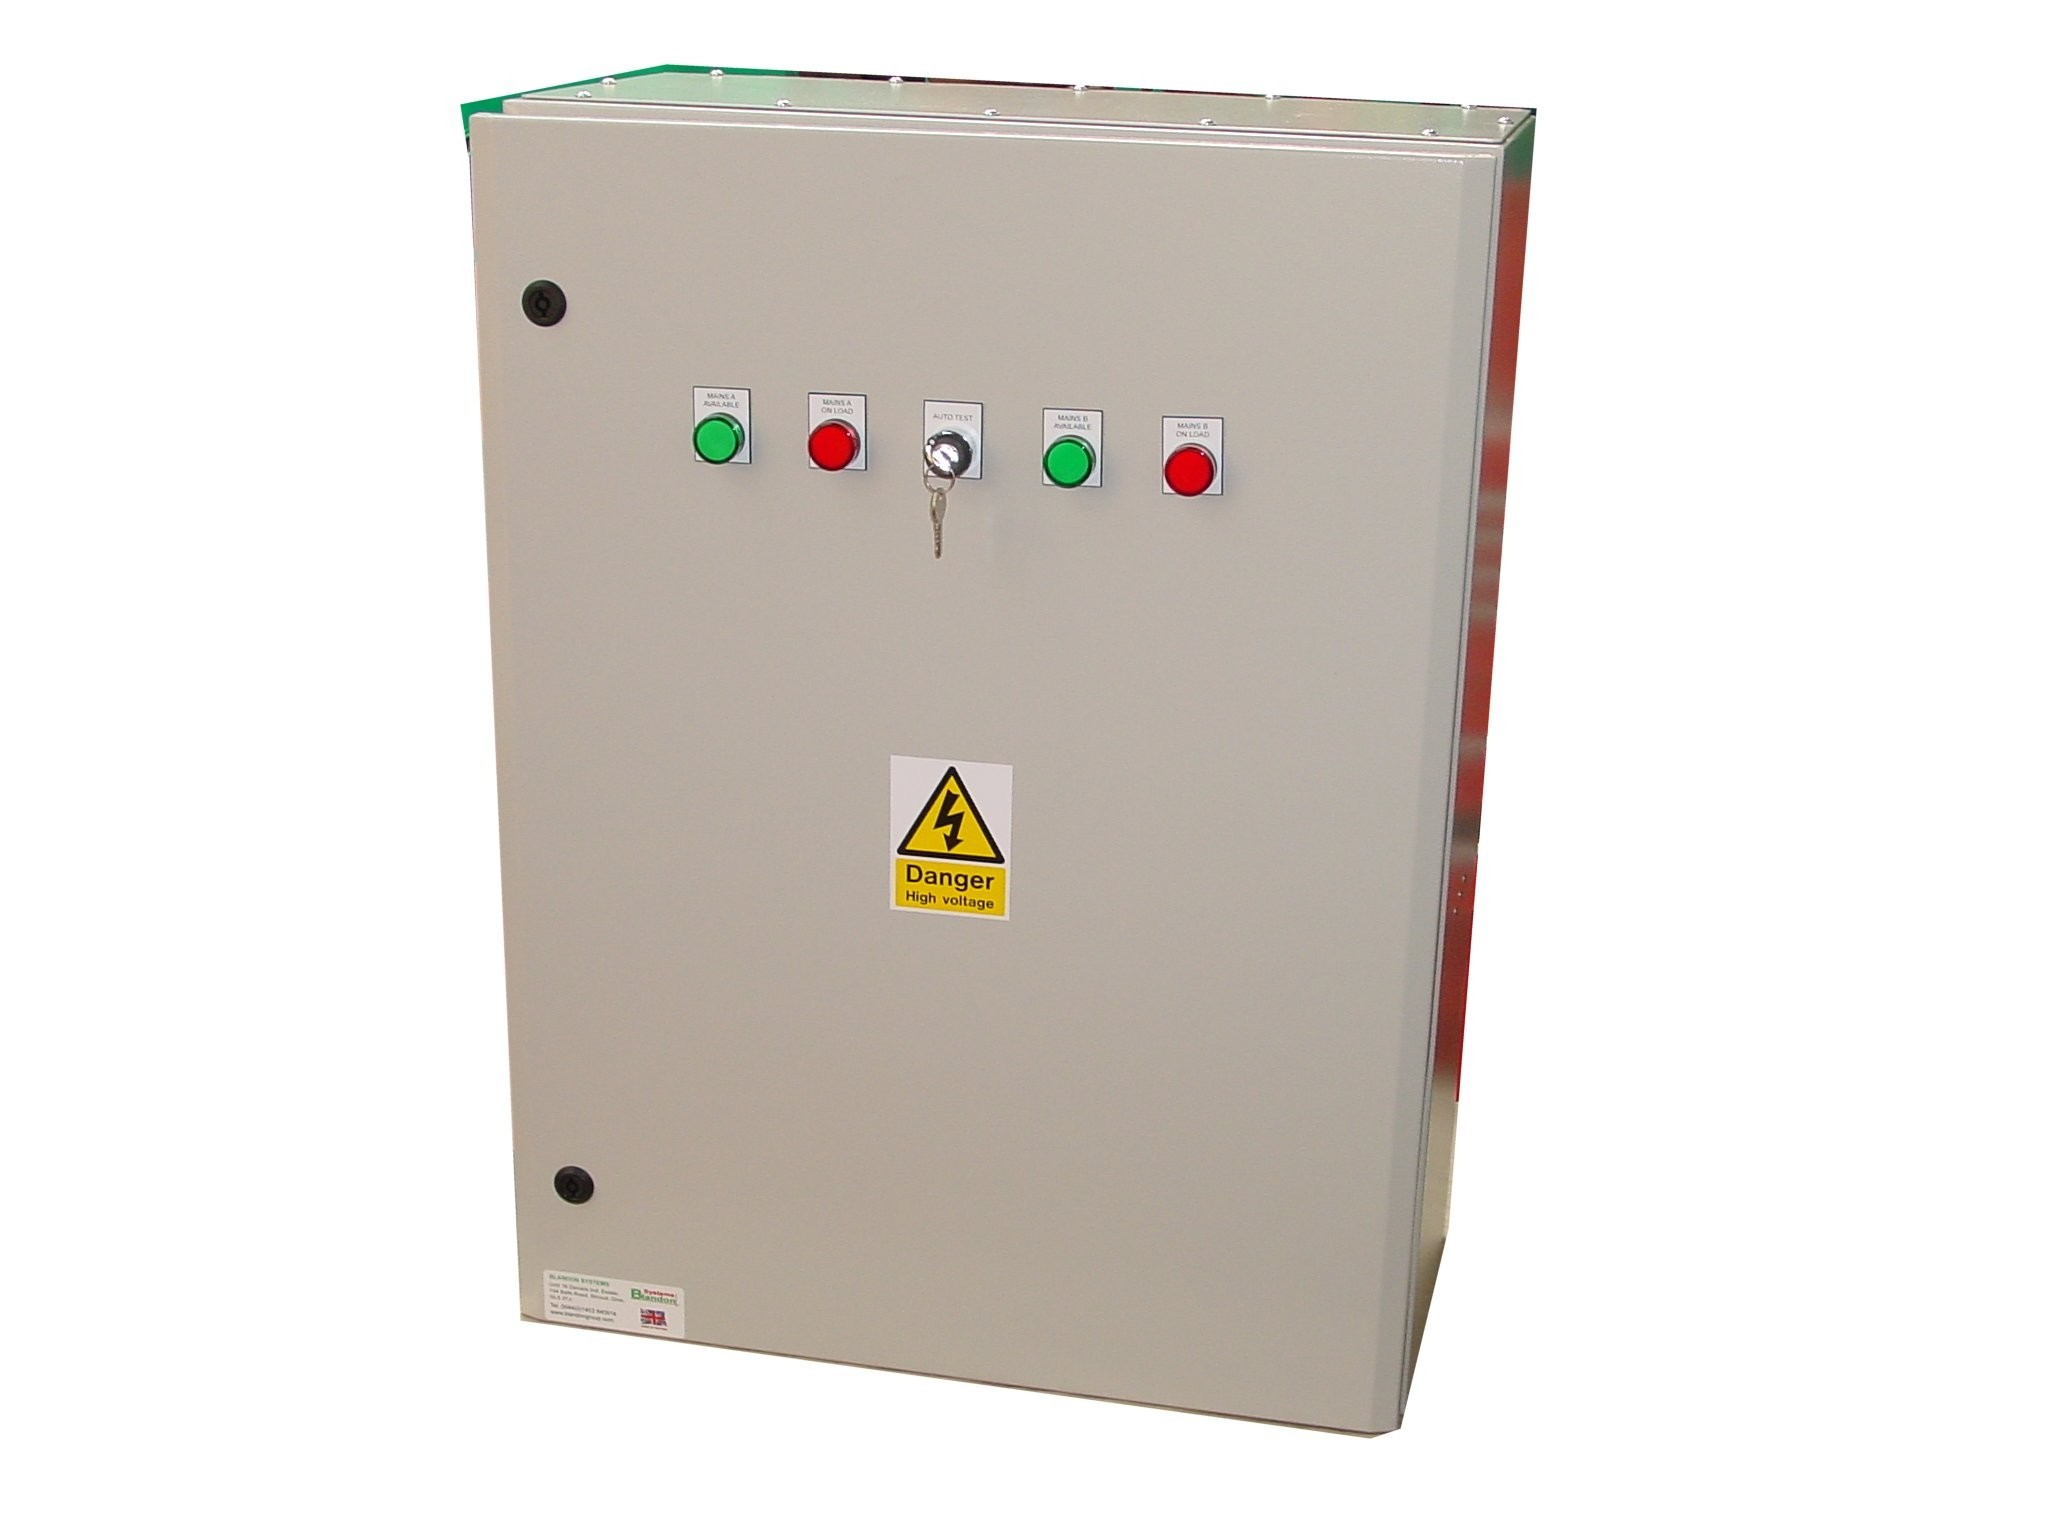 350A ATS 3 Phase Mains-Mains 400V, UVR Controlled, ABB Contactors